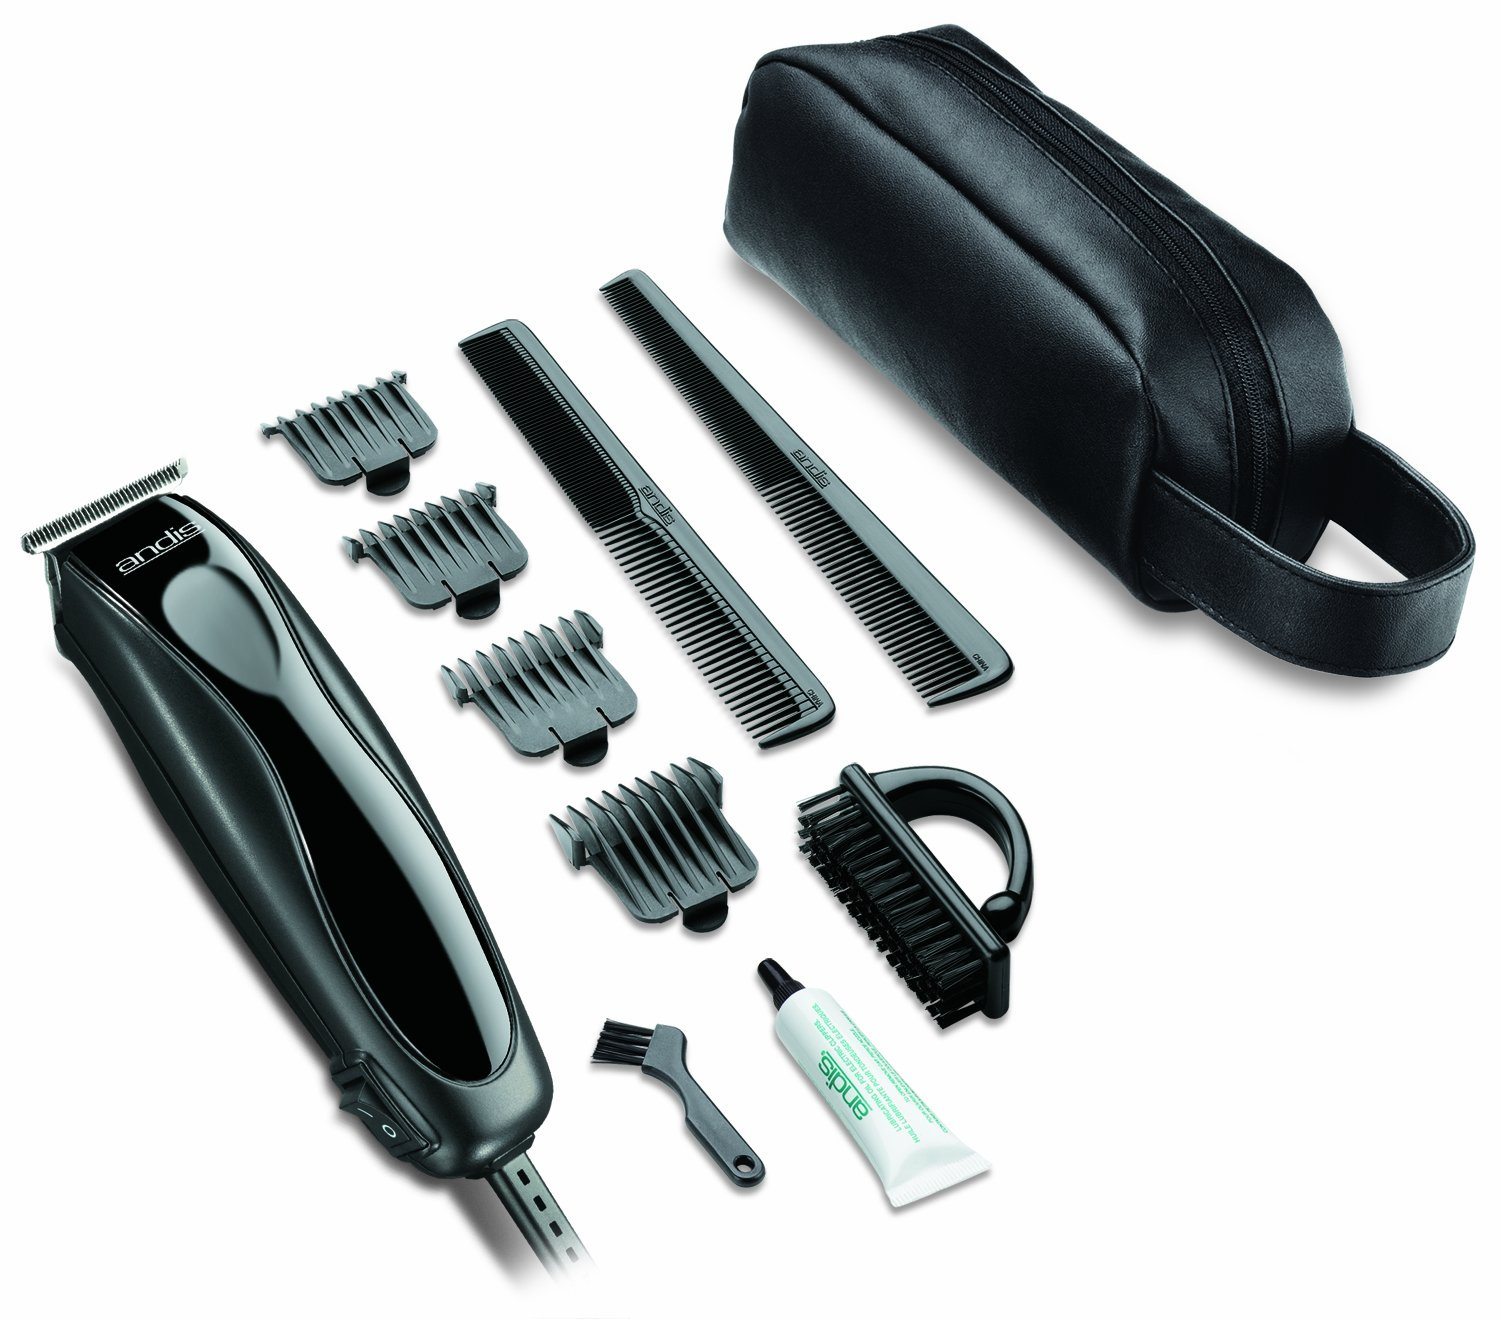 Andis Skin-Close Headliner 11-Piece Hair Clipper/Beard Trimmer Kit, Black, Model LS-2 (29775) by Andis (Image #2)